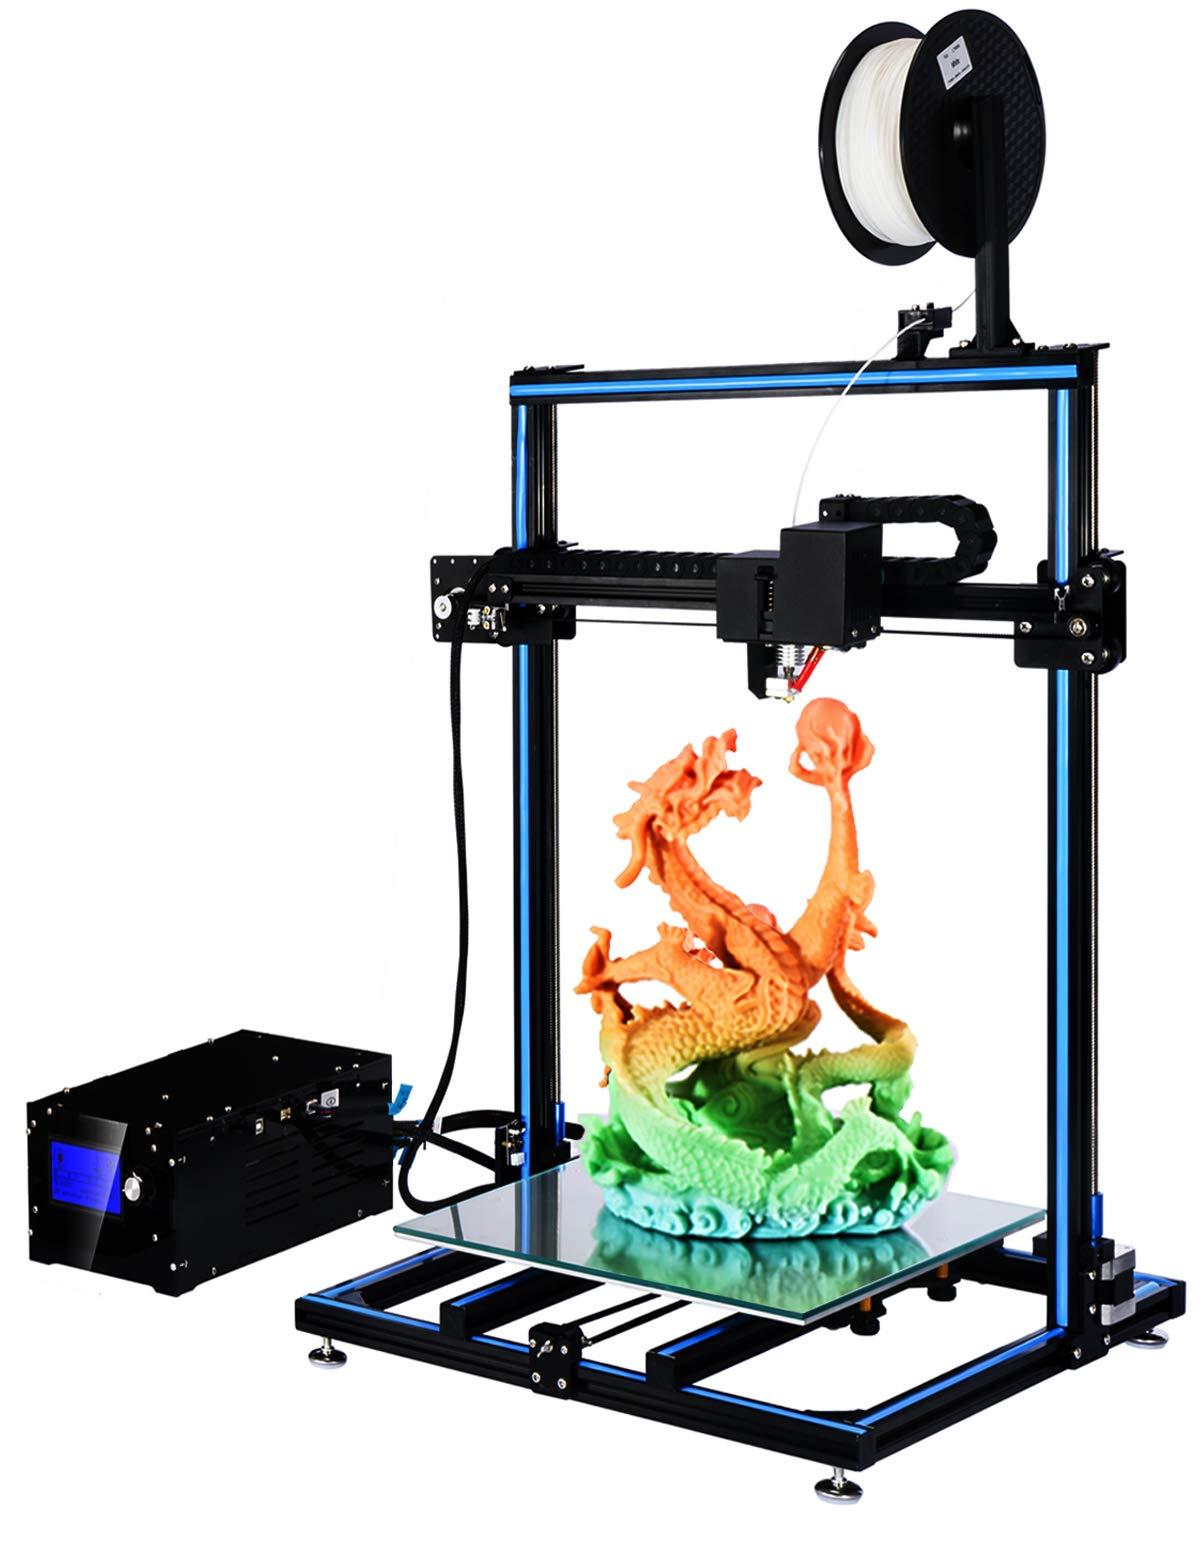 ADIMLab Imprimantes 3D Assemblé I3 Plus 3D Printer 310X310X410 Impression en 3D avec Heatbed Bed et Glas PLA, Offer Auto Leveling Update Method